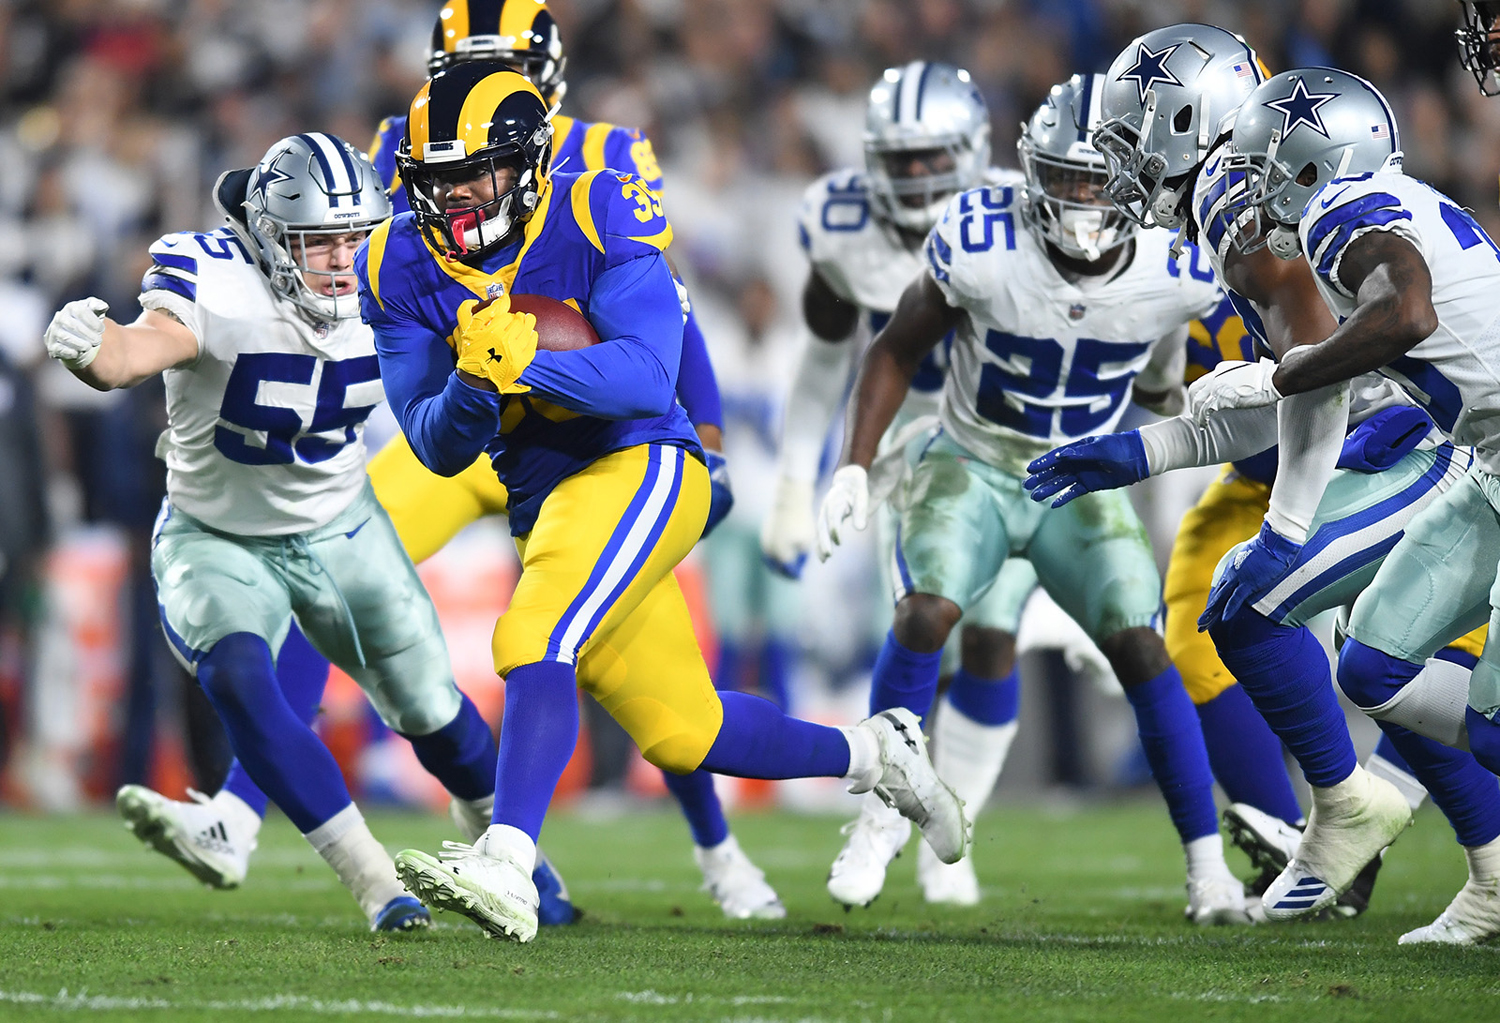 Los Angeles Rams running back C.J. Anderson picks up yards against the Dallas Cowboys in the first quarter during the NFL Divisional Round at the Los Angeles Memorial Coliseum on Saturday.